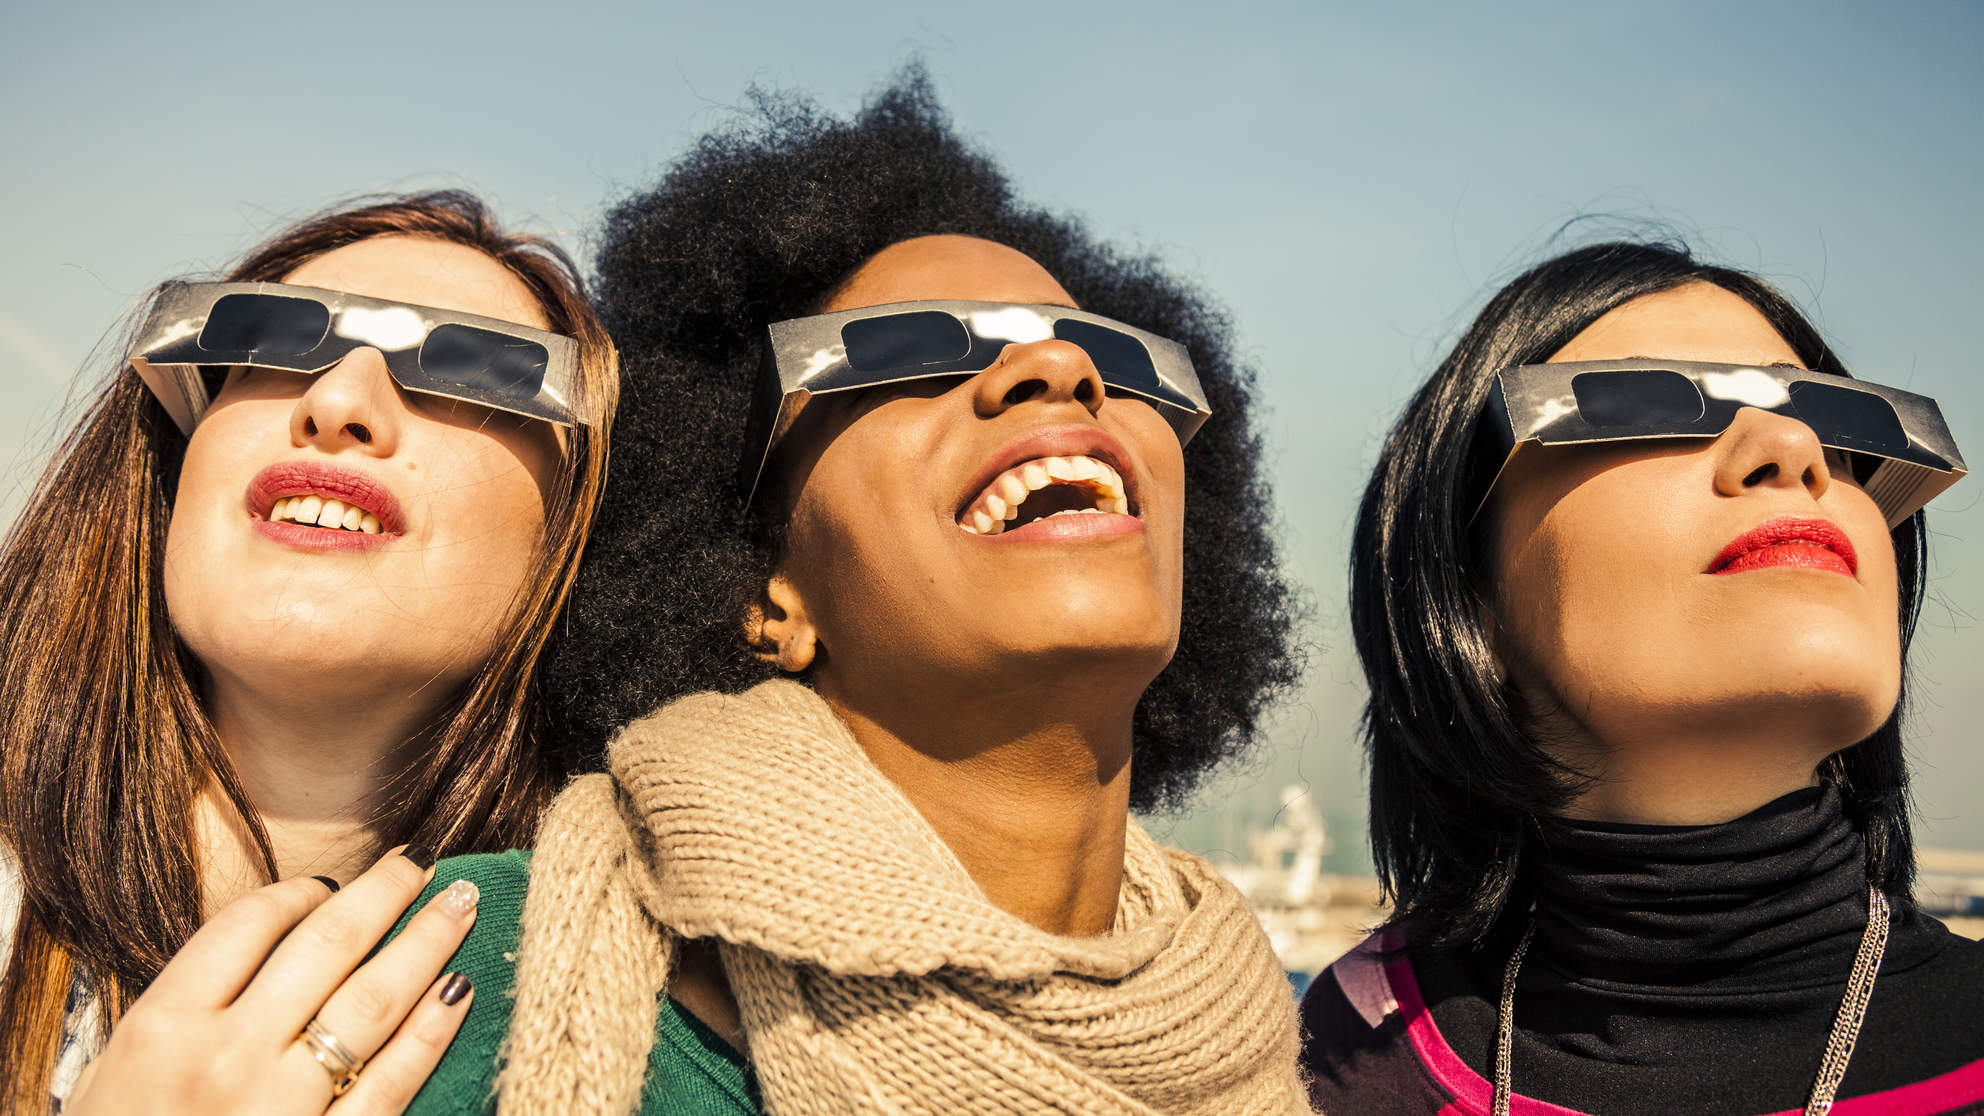 How to View the Solar Eclipse Without Damaging Your Eyes